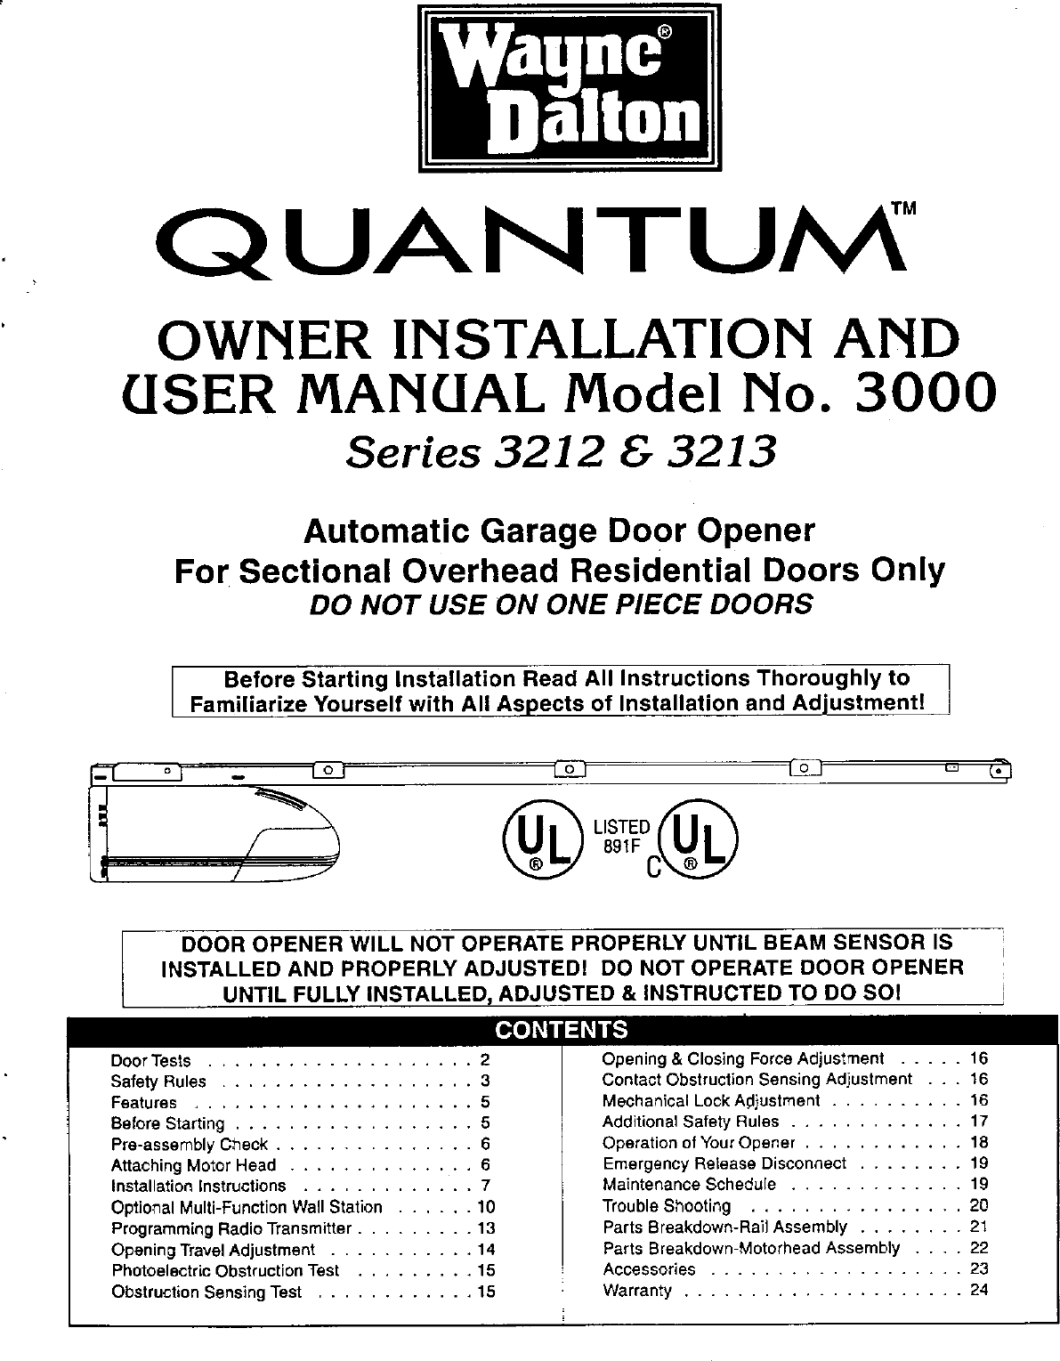 Dalton Garage Door Opener Manual